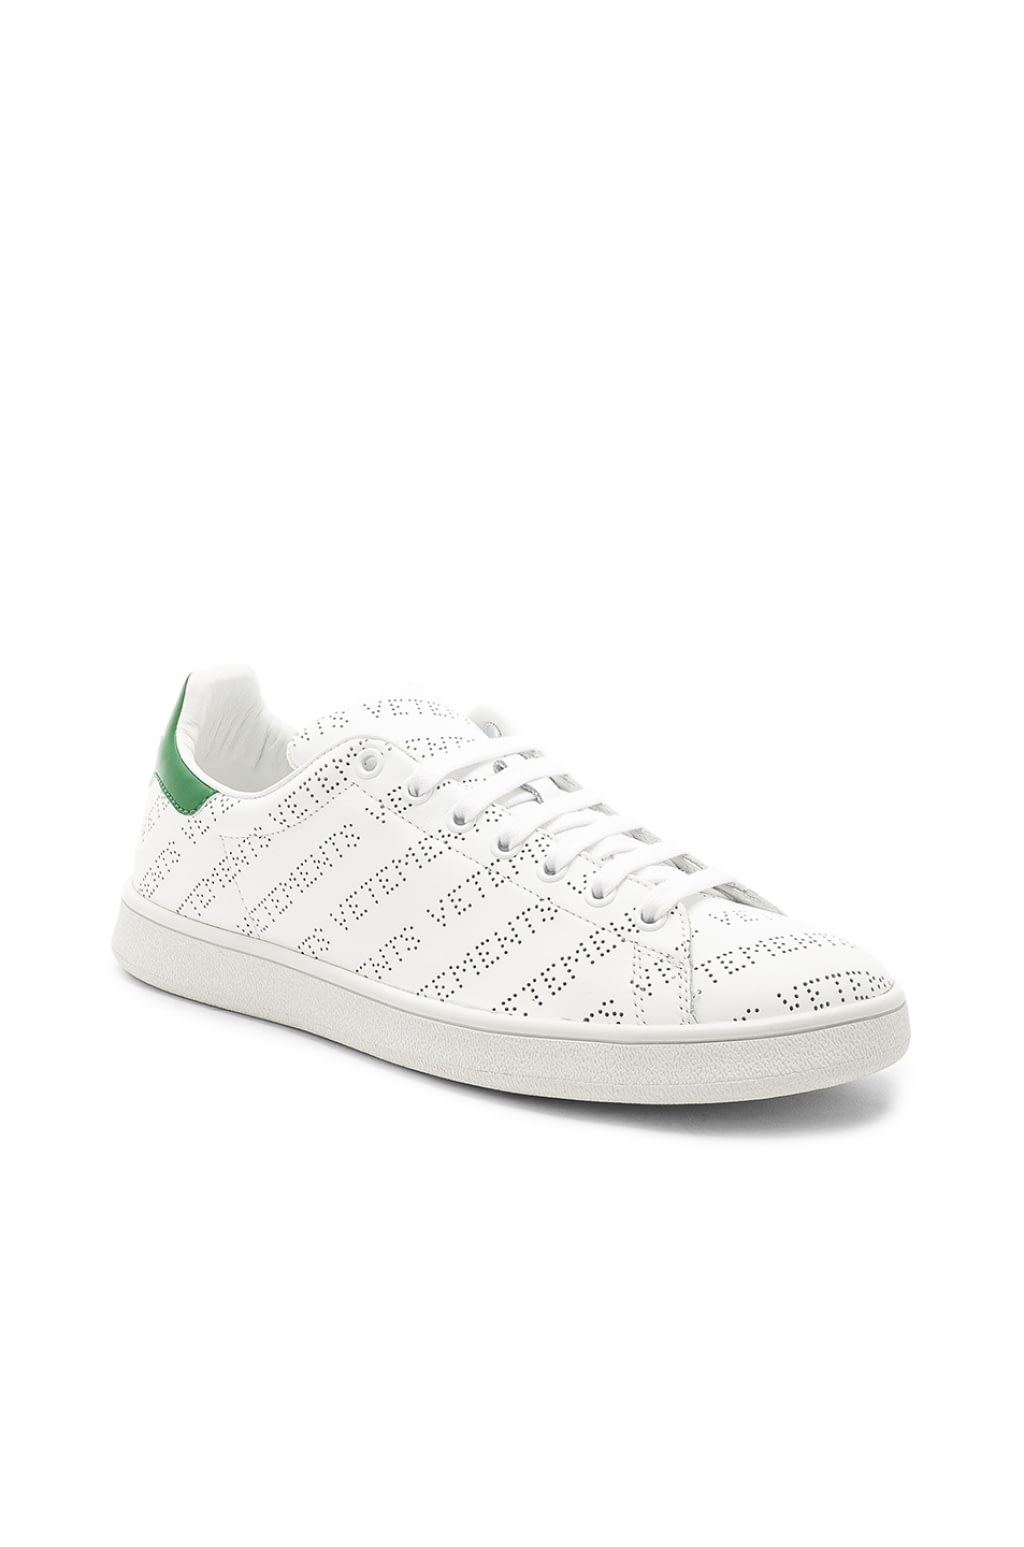 Perforated leather sneakers VETEMENTS q8MmnZ